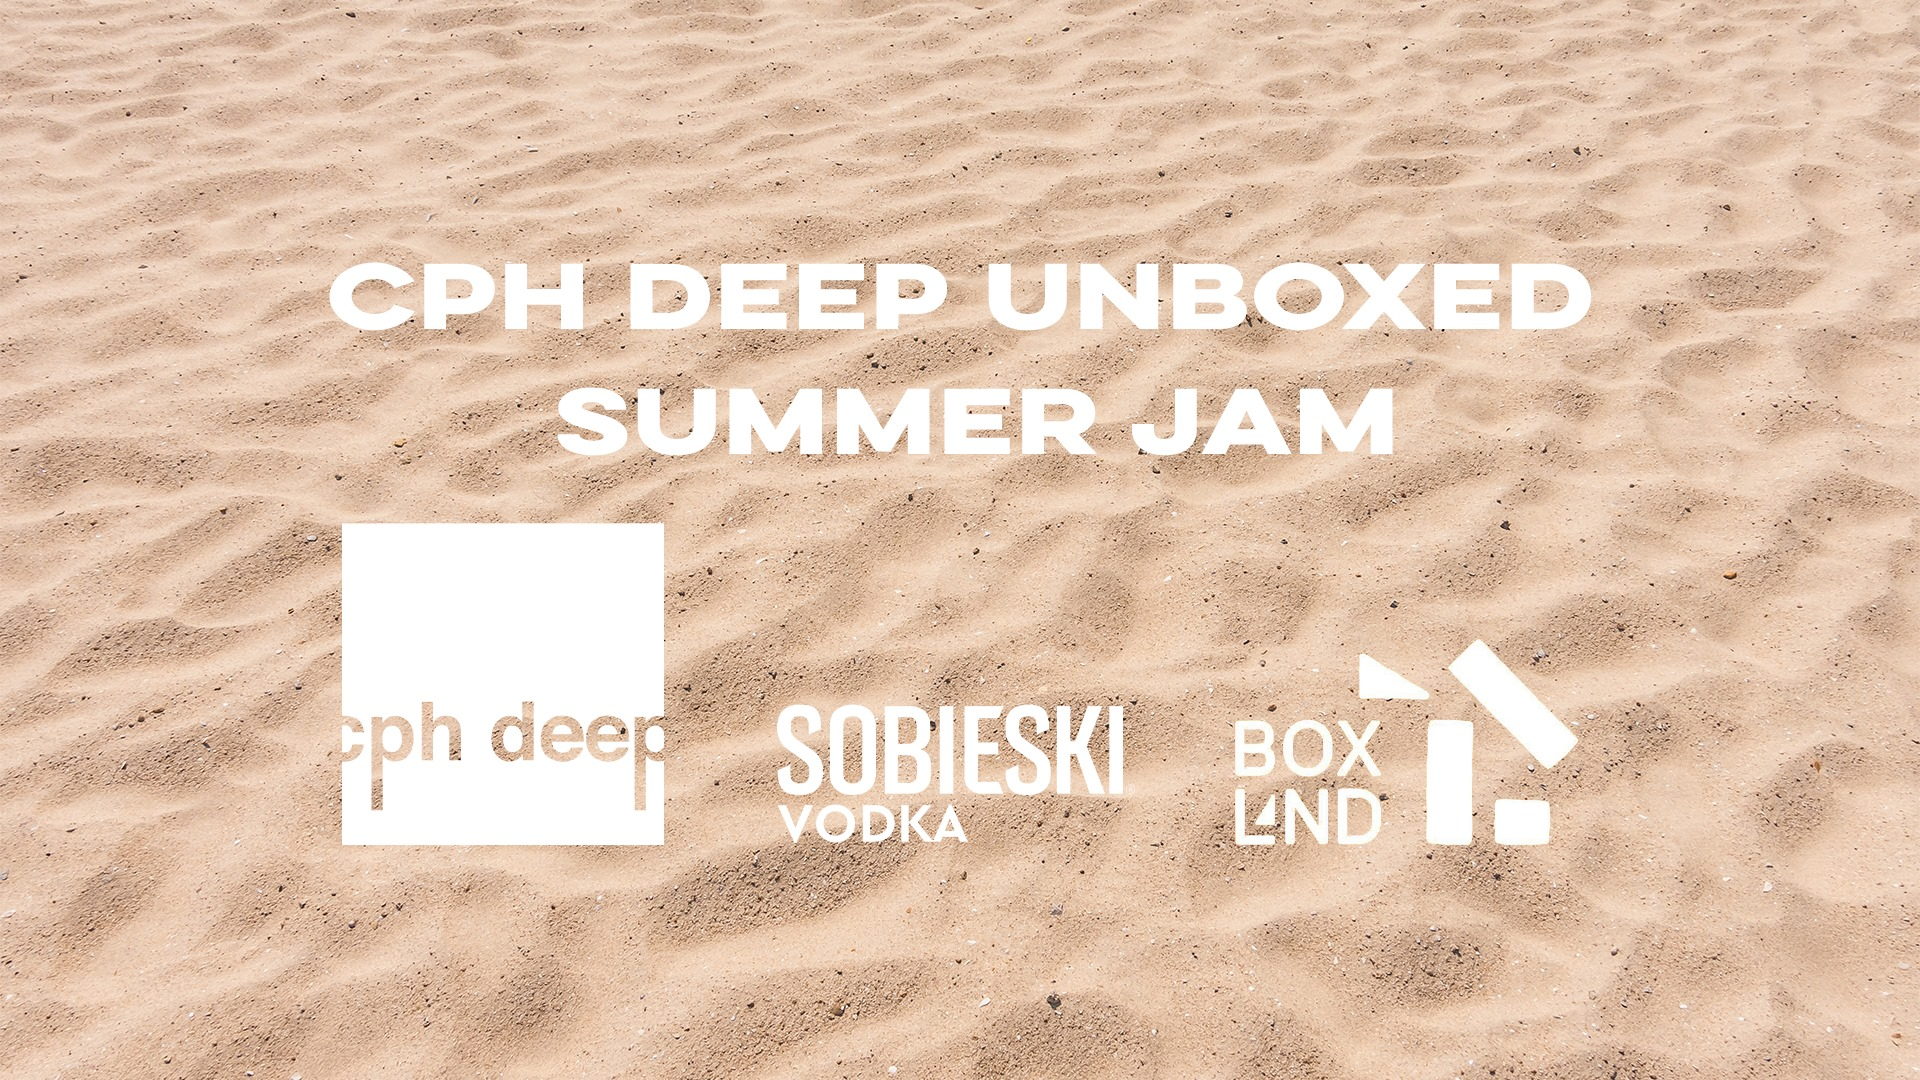 CPH DEEP UNBOXED SUMMER JAM